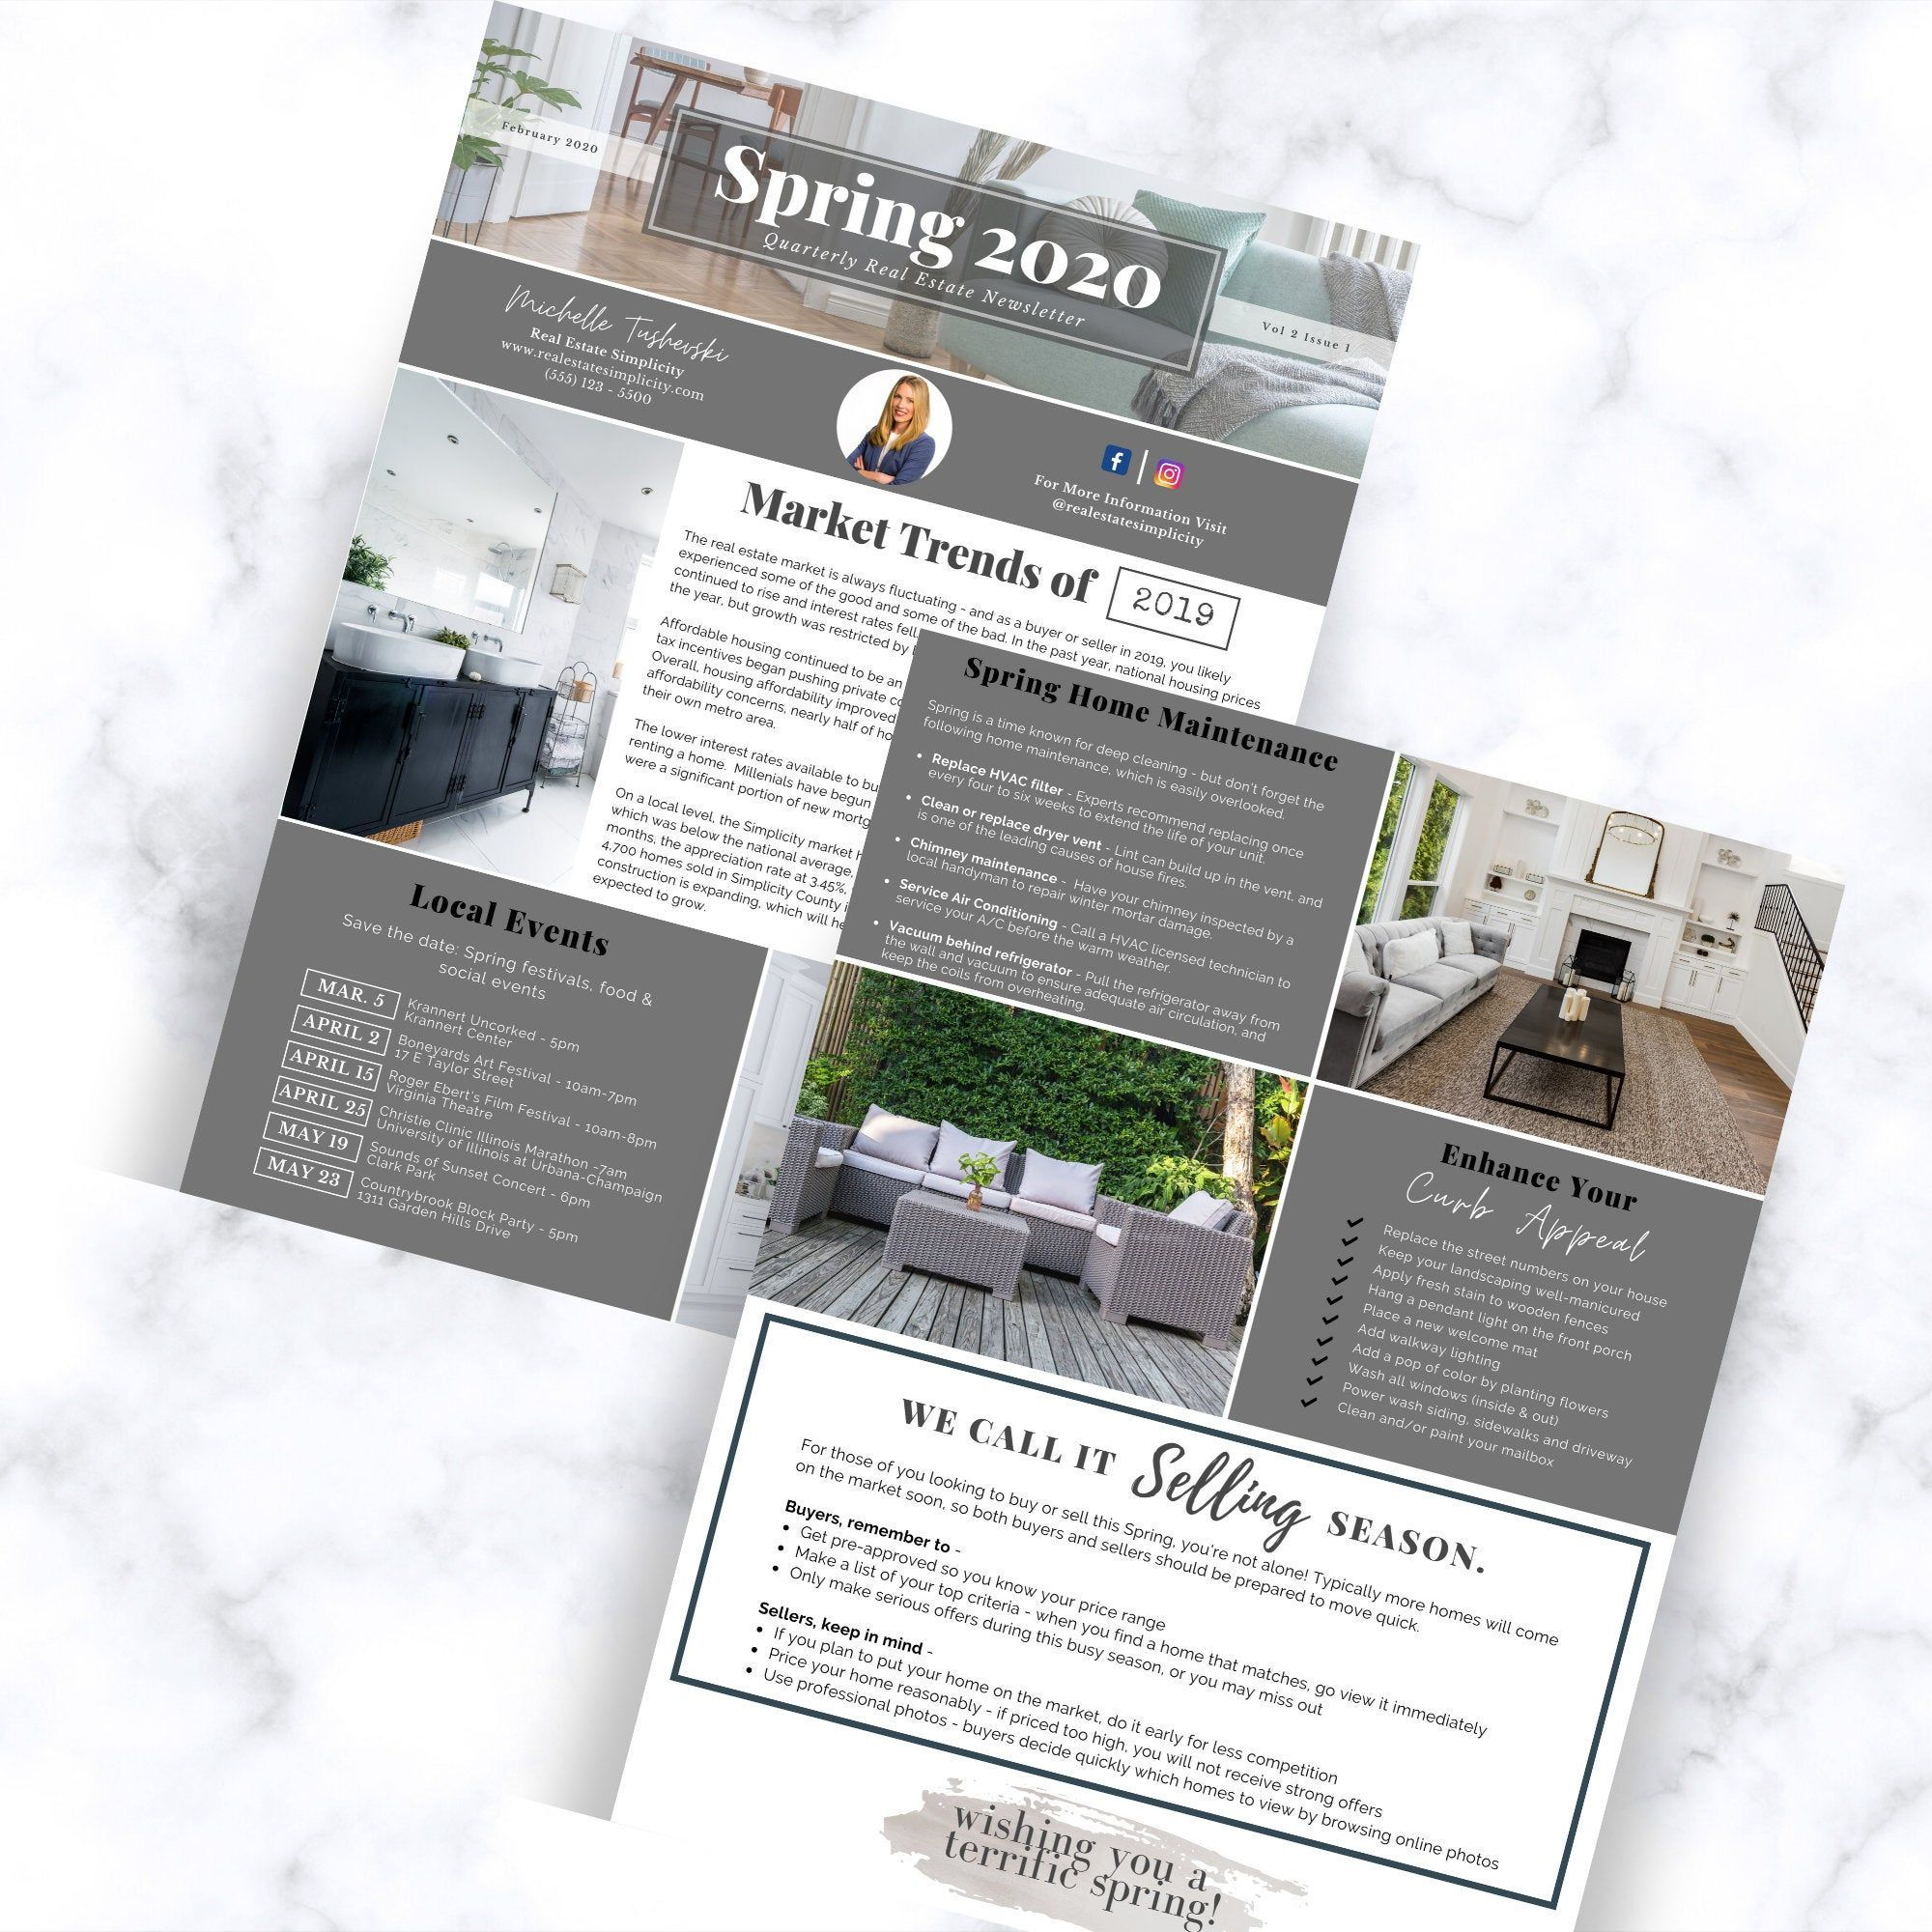 Real Estate Newsletter Template Spring 2020 Newsletter Real Estate Marketing Realtor Newslett In 2020 Real Estate Marketing Real Estate Flyers Real Estate Buyers Guide